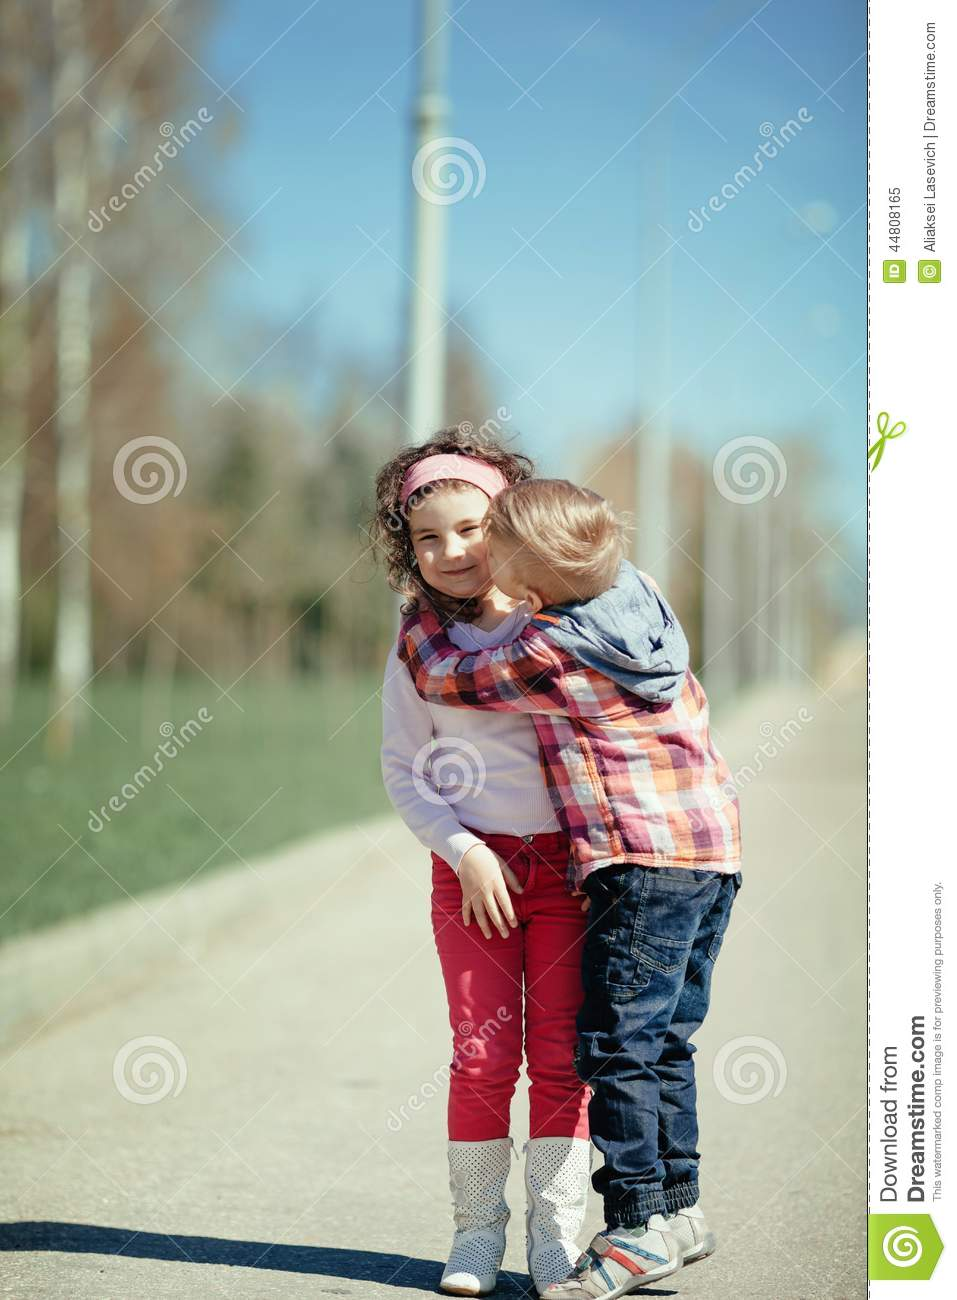 little boy kiss girl on the street stock image - image of little